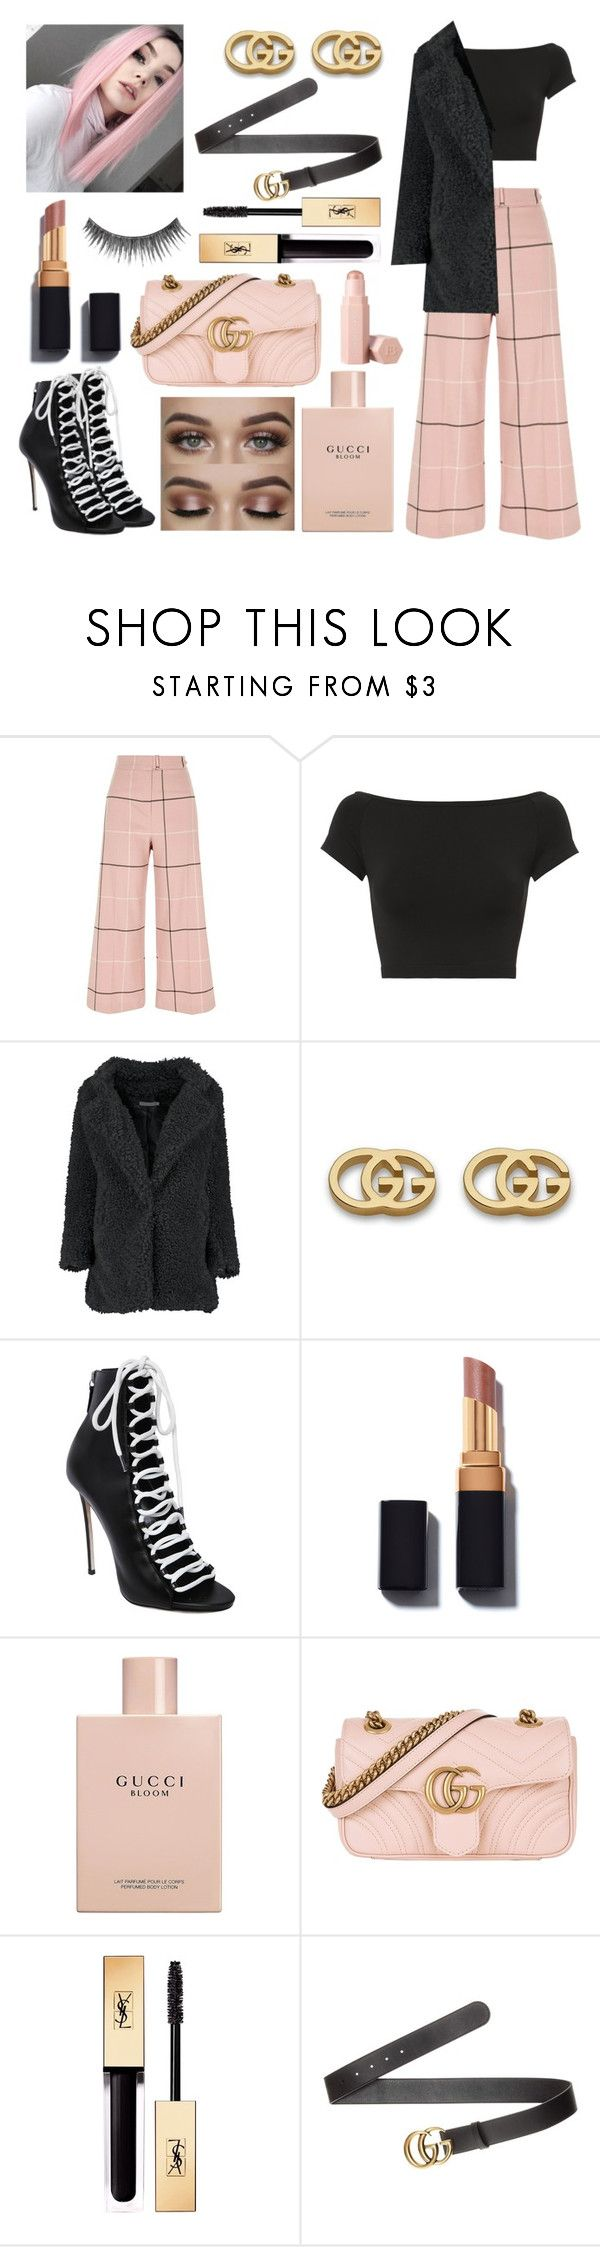 """""""Teddy Coat"""" by juliapoldervaart ❤ liked on Polyvore featuring River Island, Helmut Lang, Gucci, Dsquared2, Yves Saint Laurent, Puma and NYX"""